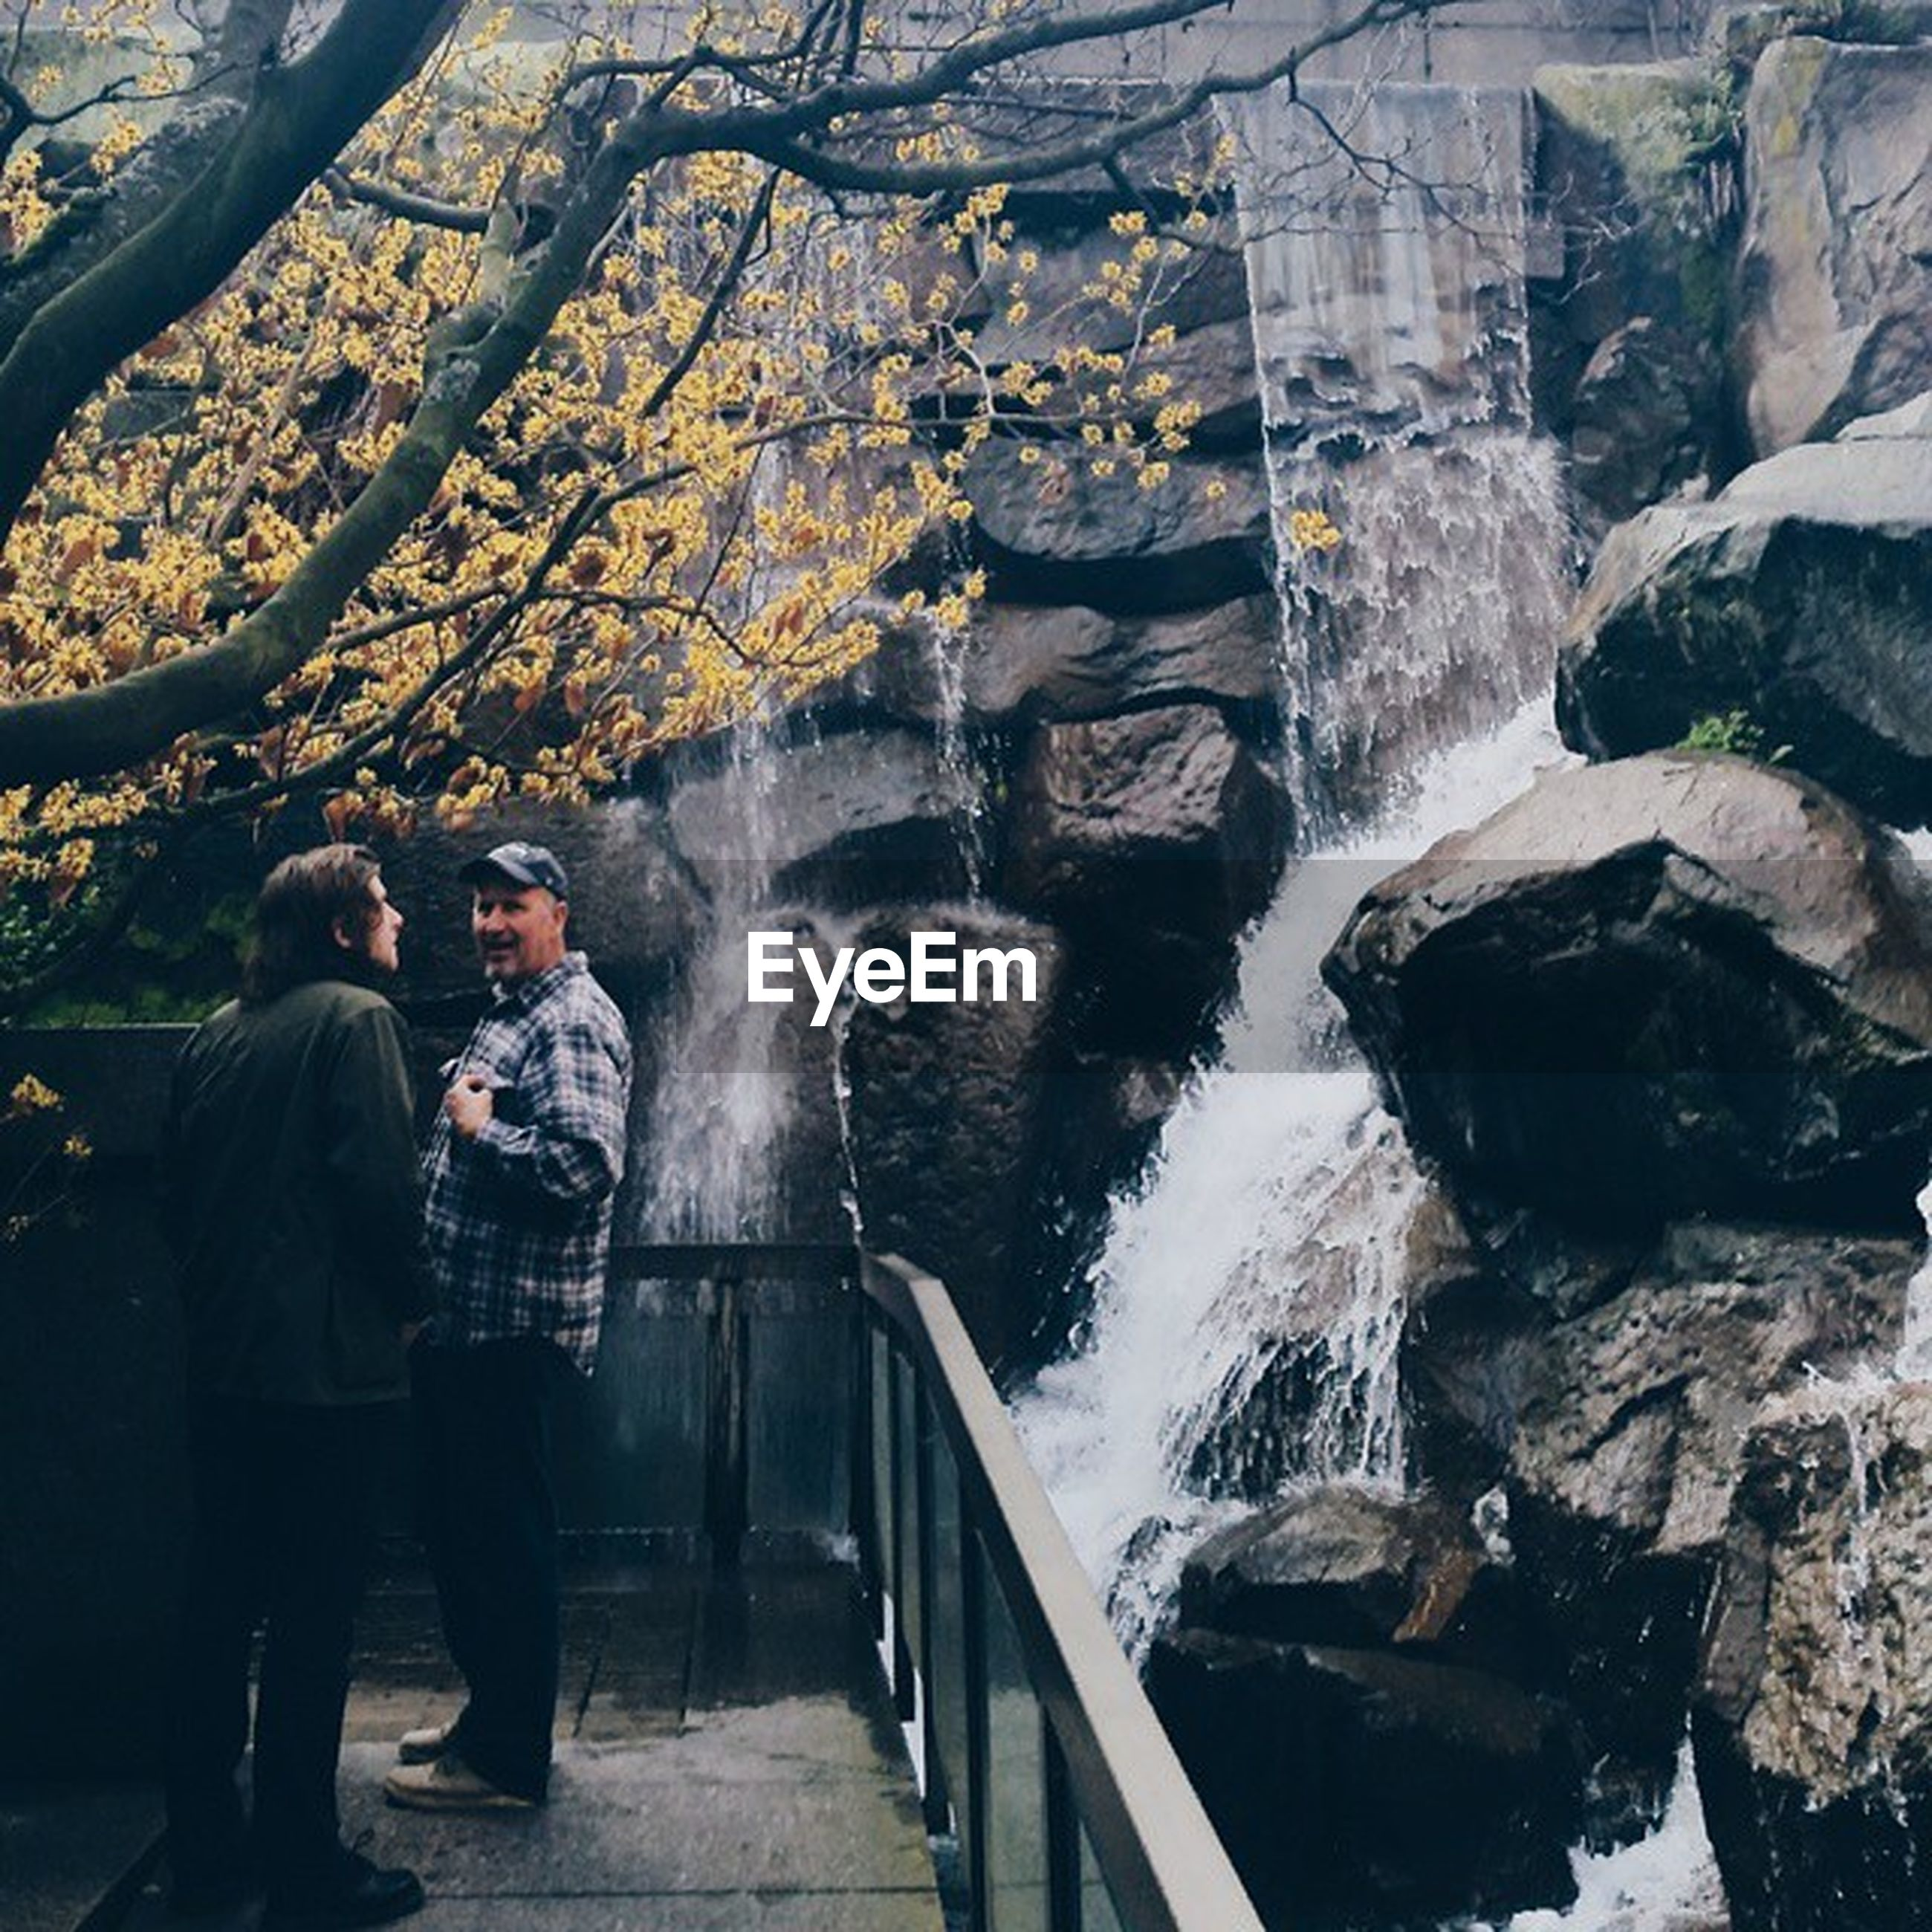 men, lifestyles, water, leisure activity, rock - object, rear view, full length, person, steps, standing, walking, built structure, motion, casual clothing, architecture, waterfall, nature